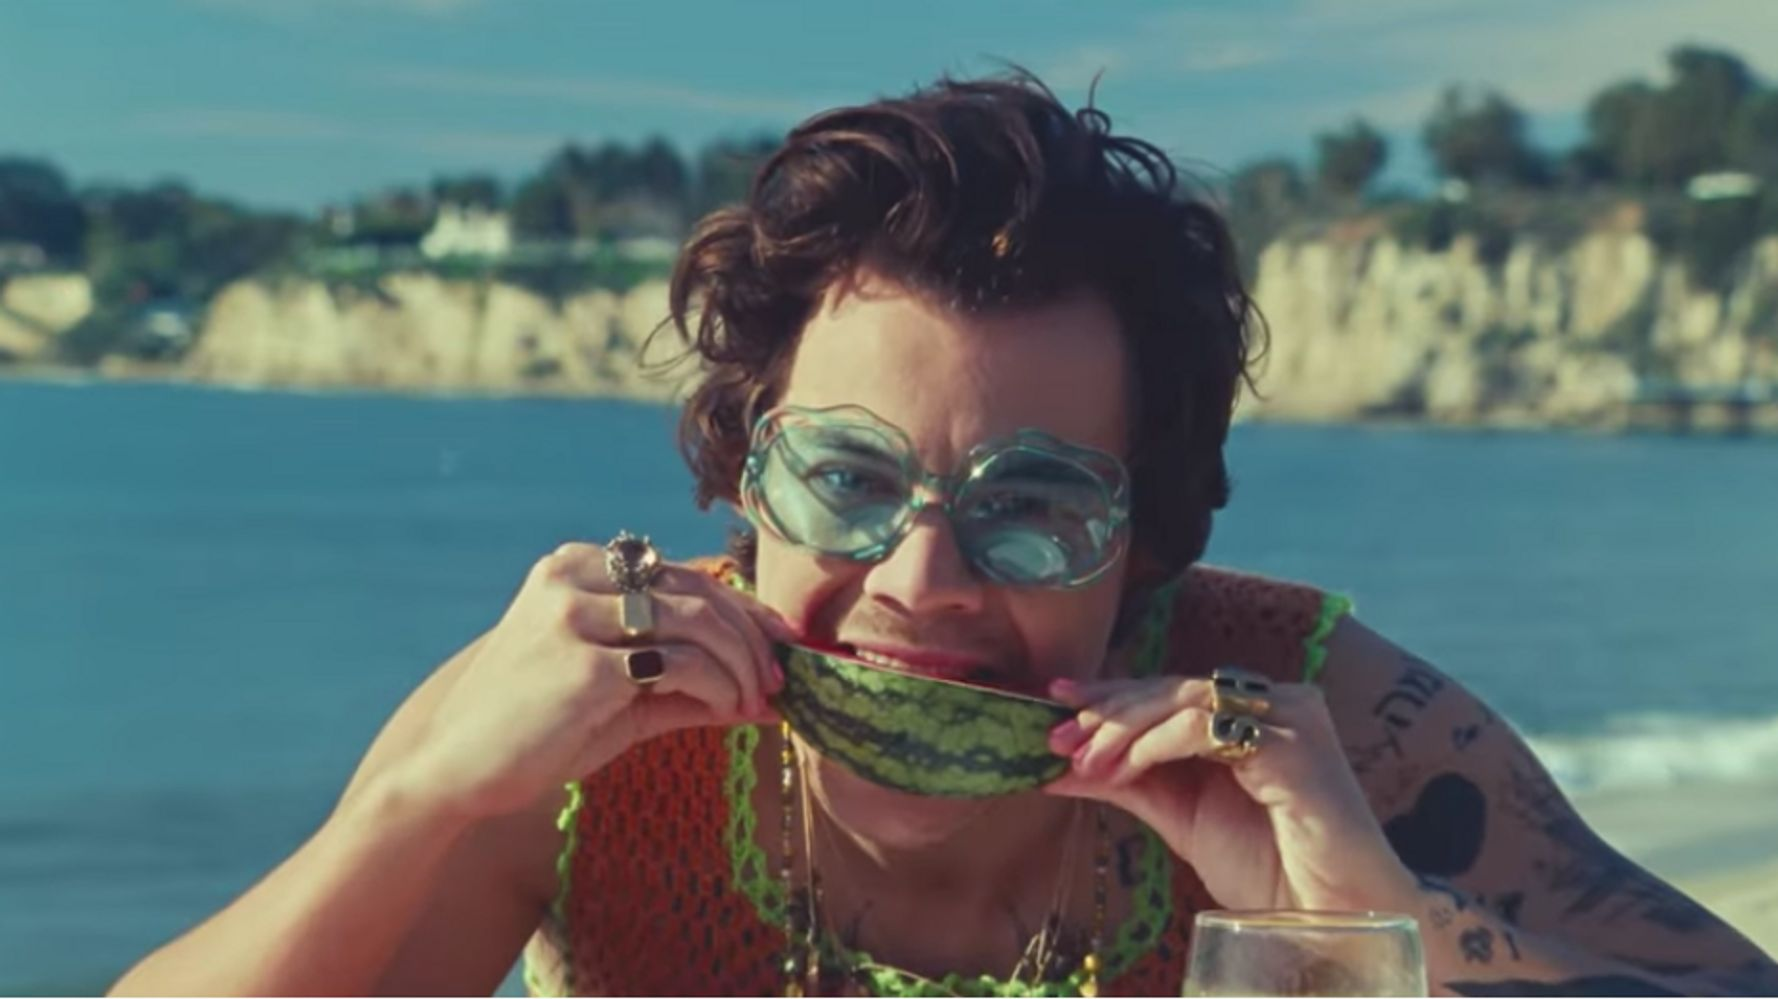 How To Get The Looks From Harry Styles' 'Watermelon Sugar' Music Video 1